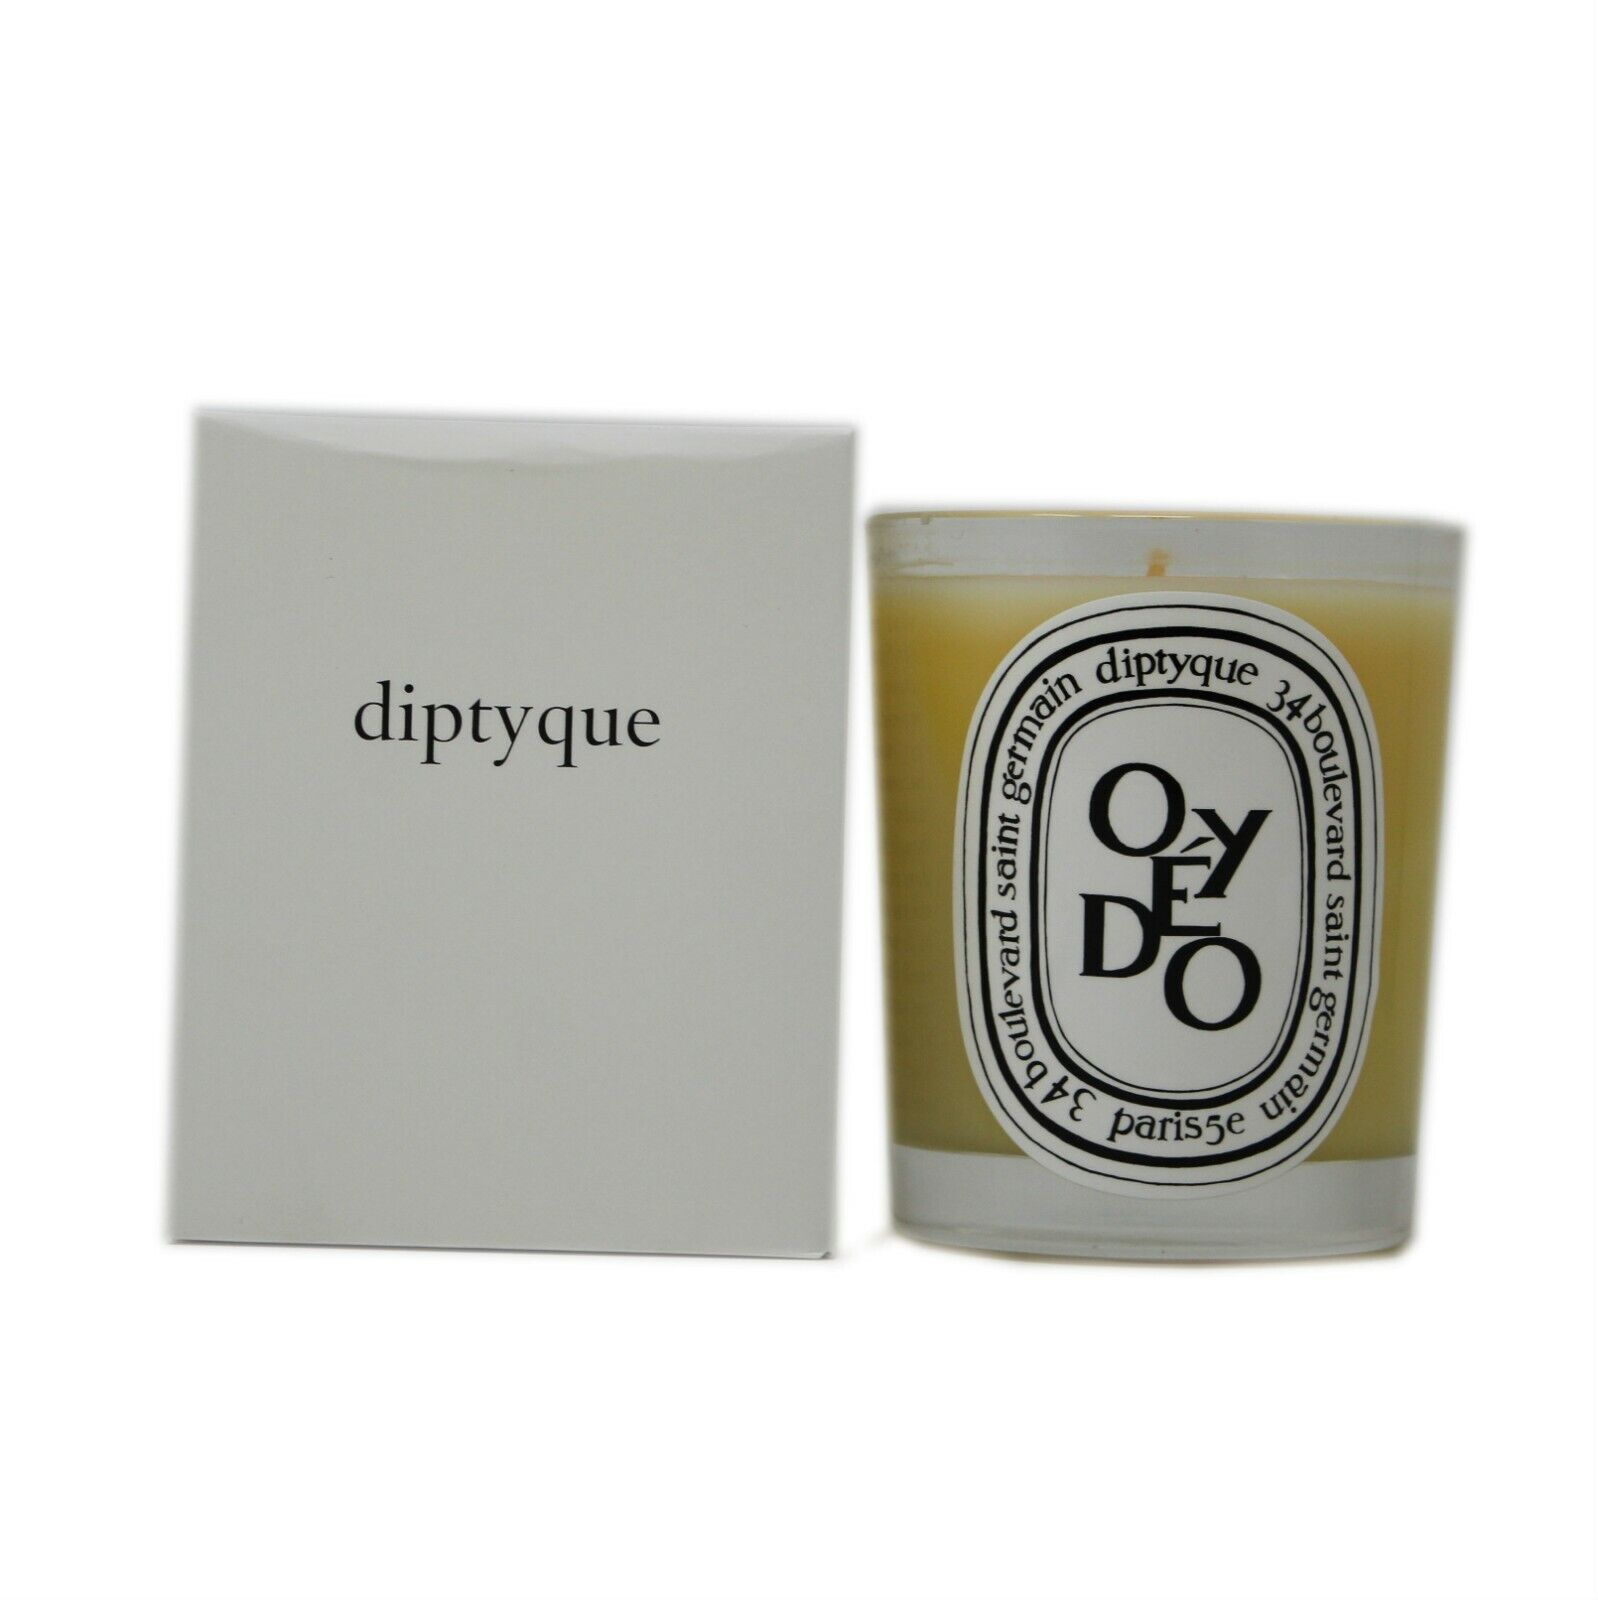 DIPTYQUE OYEDO SCENTED CANDLE 190 G  6.5 OZ.